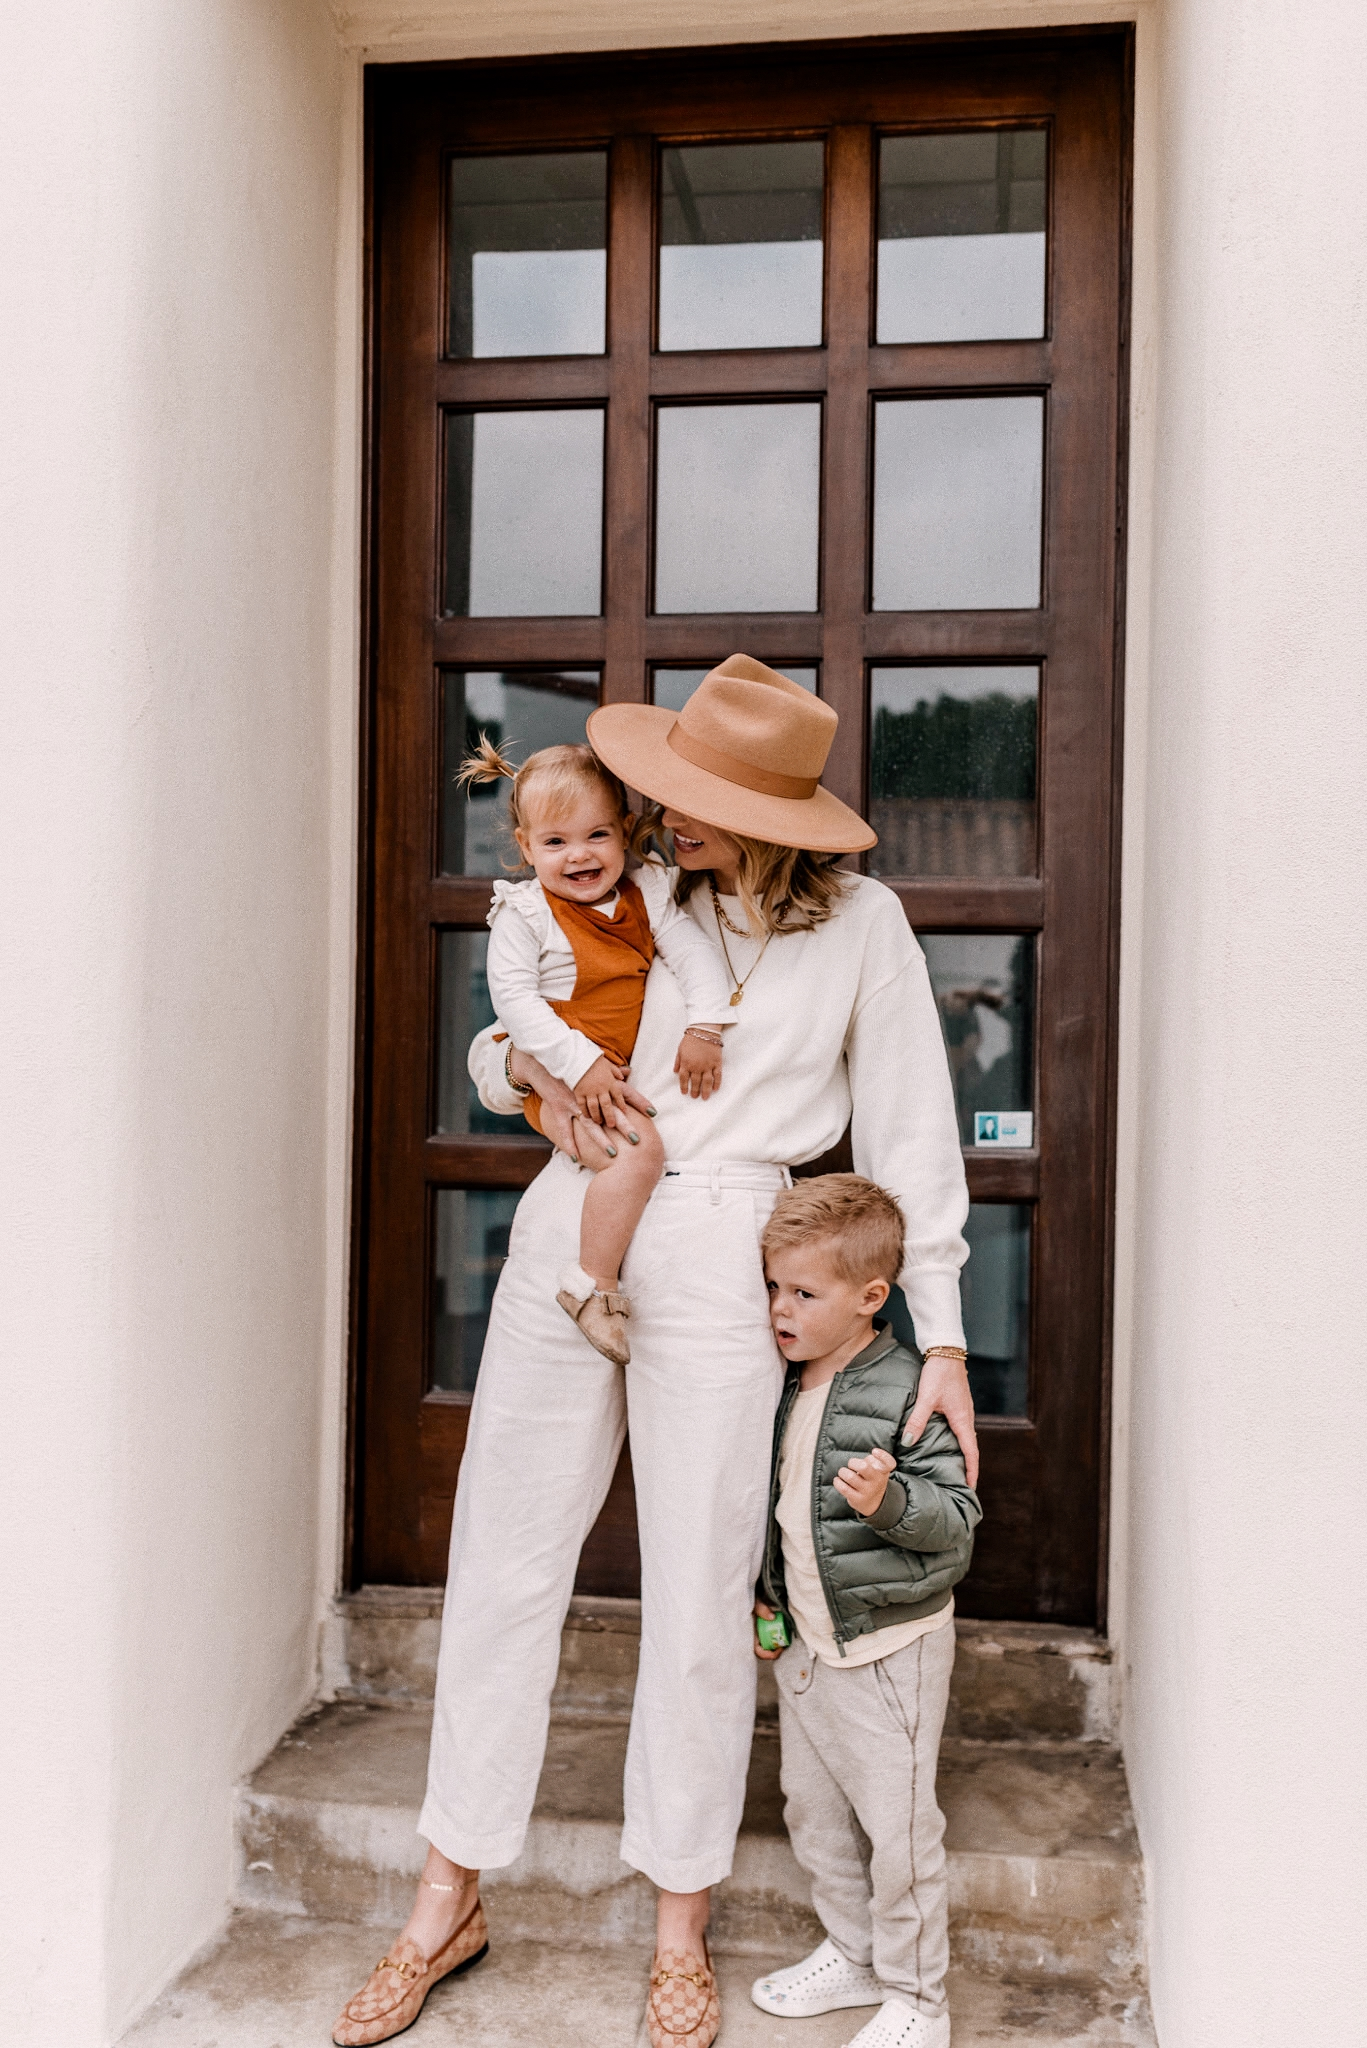 Affordable kids clothing |Kids Winter Clothes by popular San Diego motherhood blog, Navy Grace: image of a mom and her two young kids standing together on some cement steps.